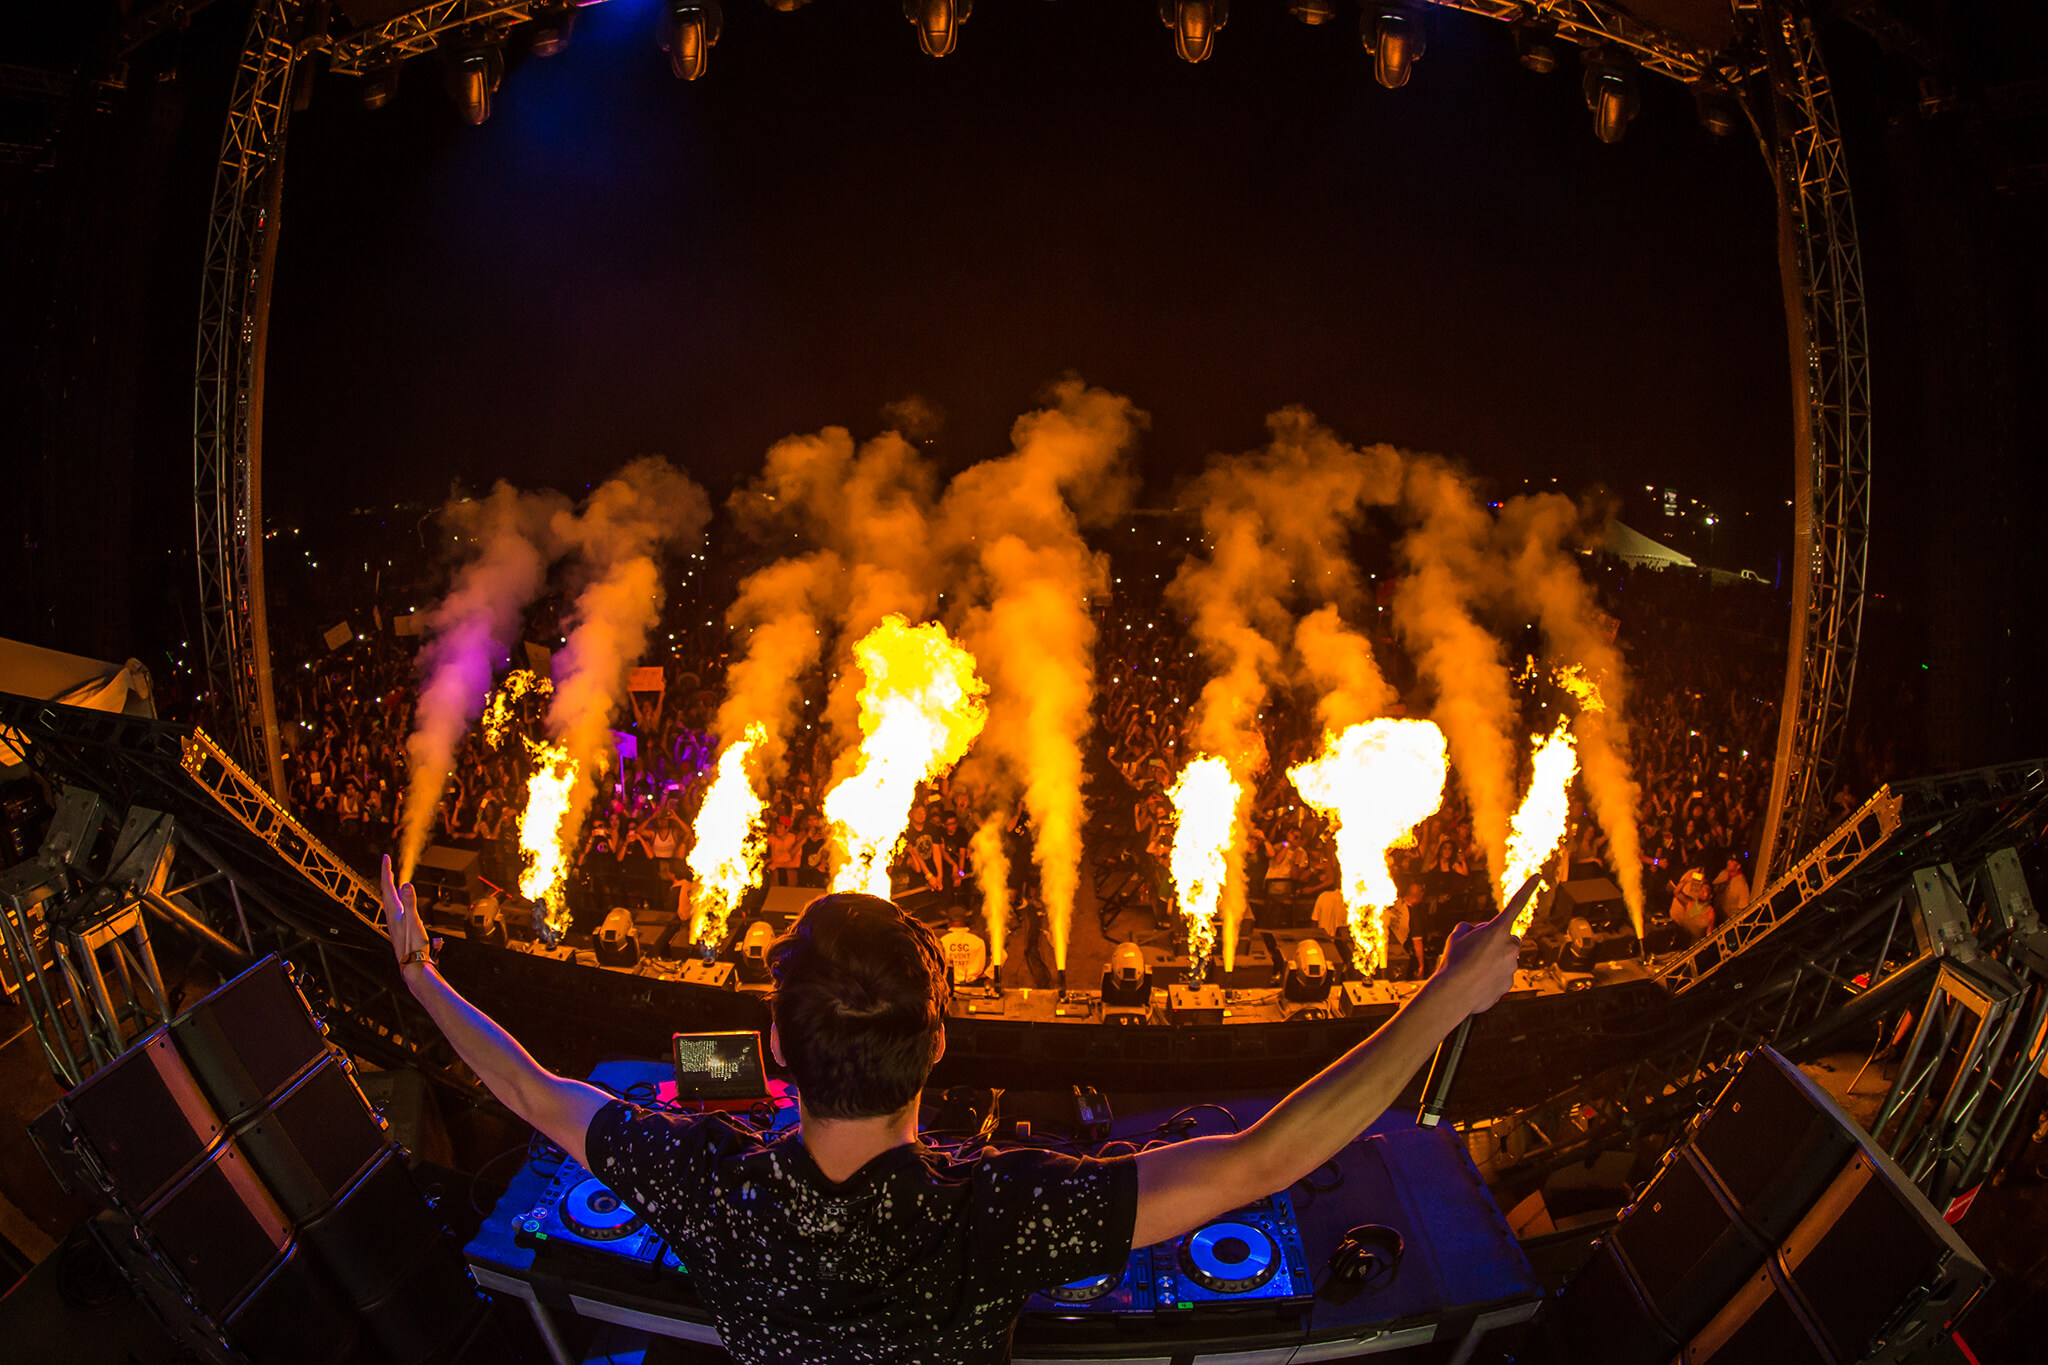 Martin Garrix performing on main stage with pyro